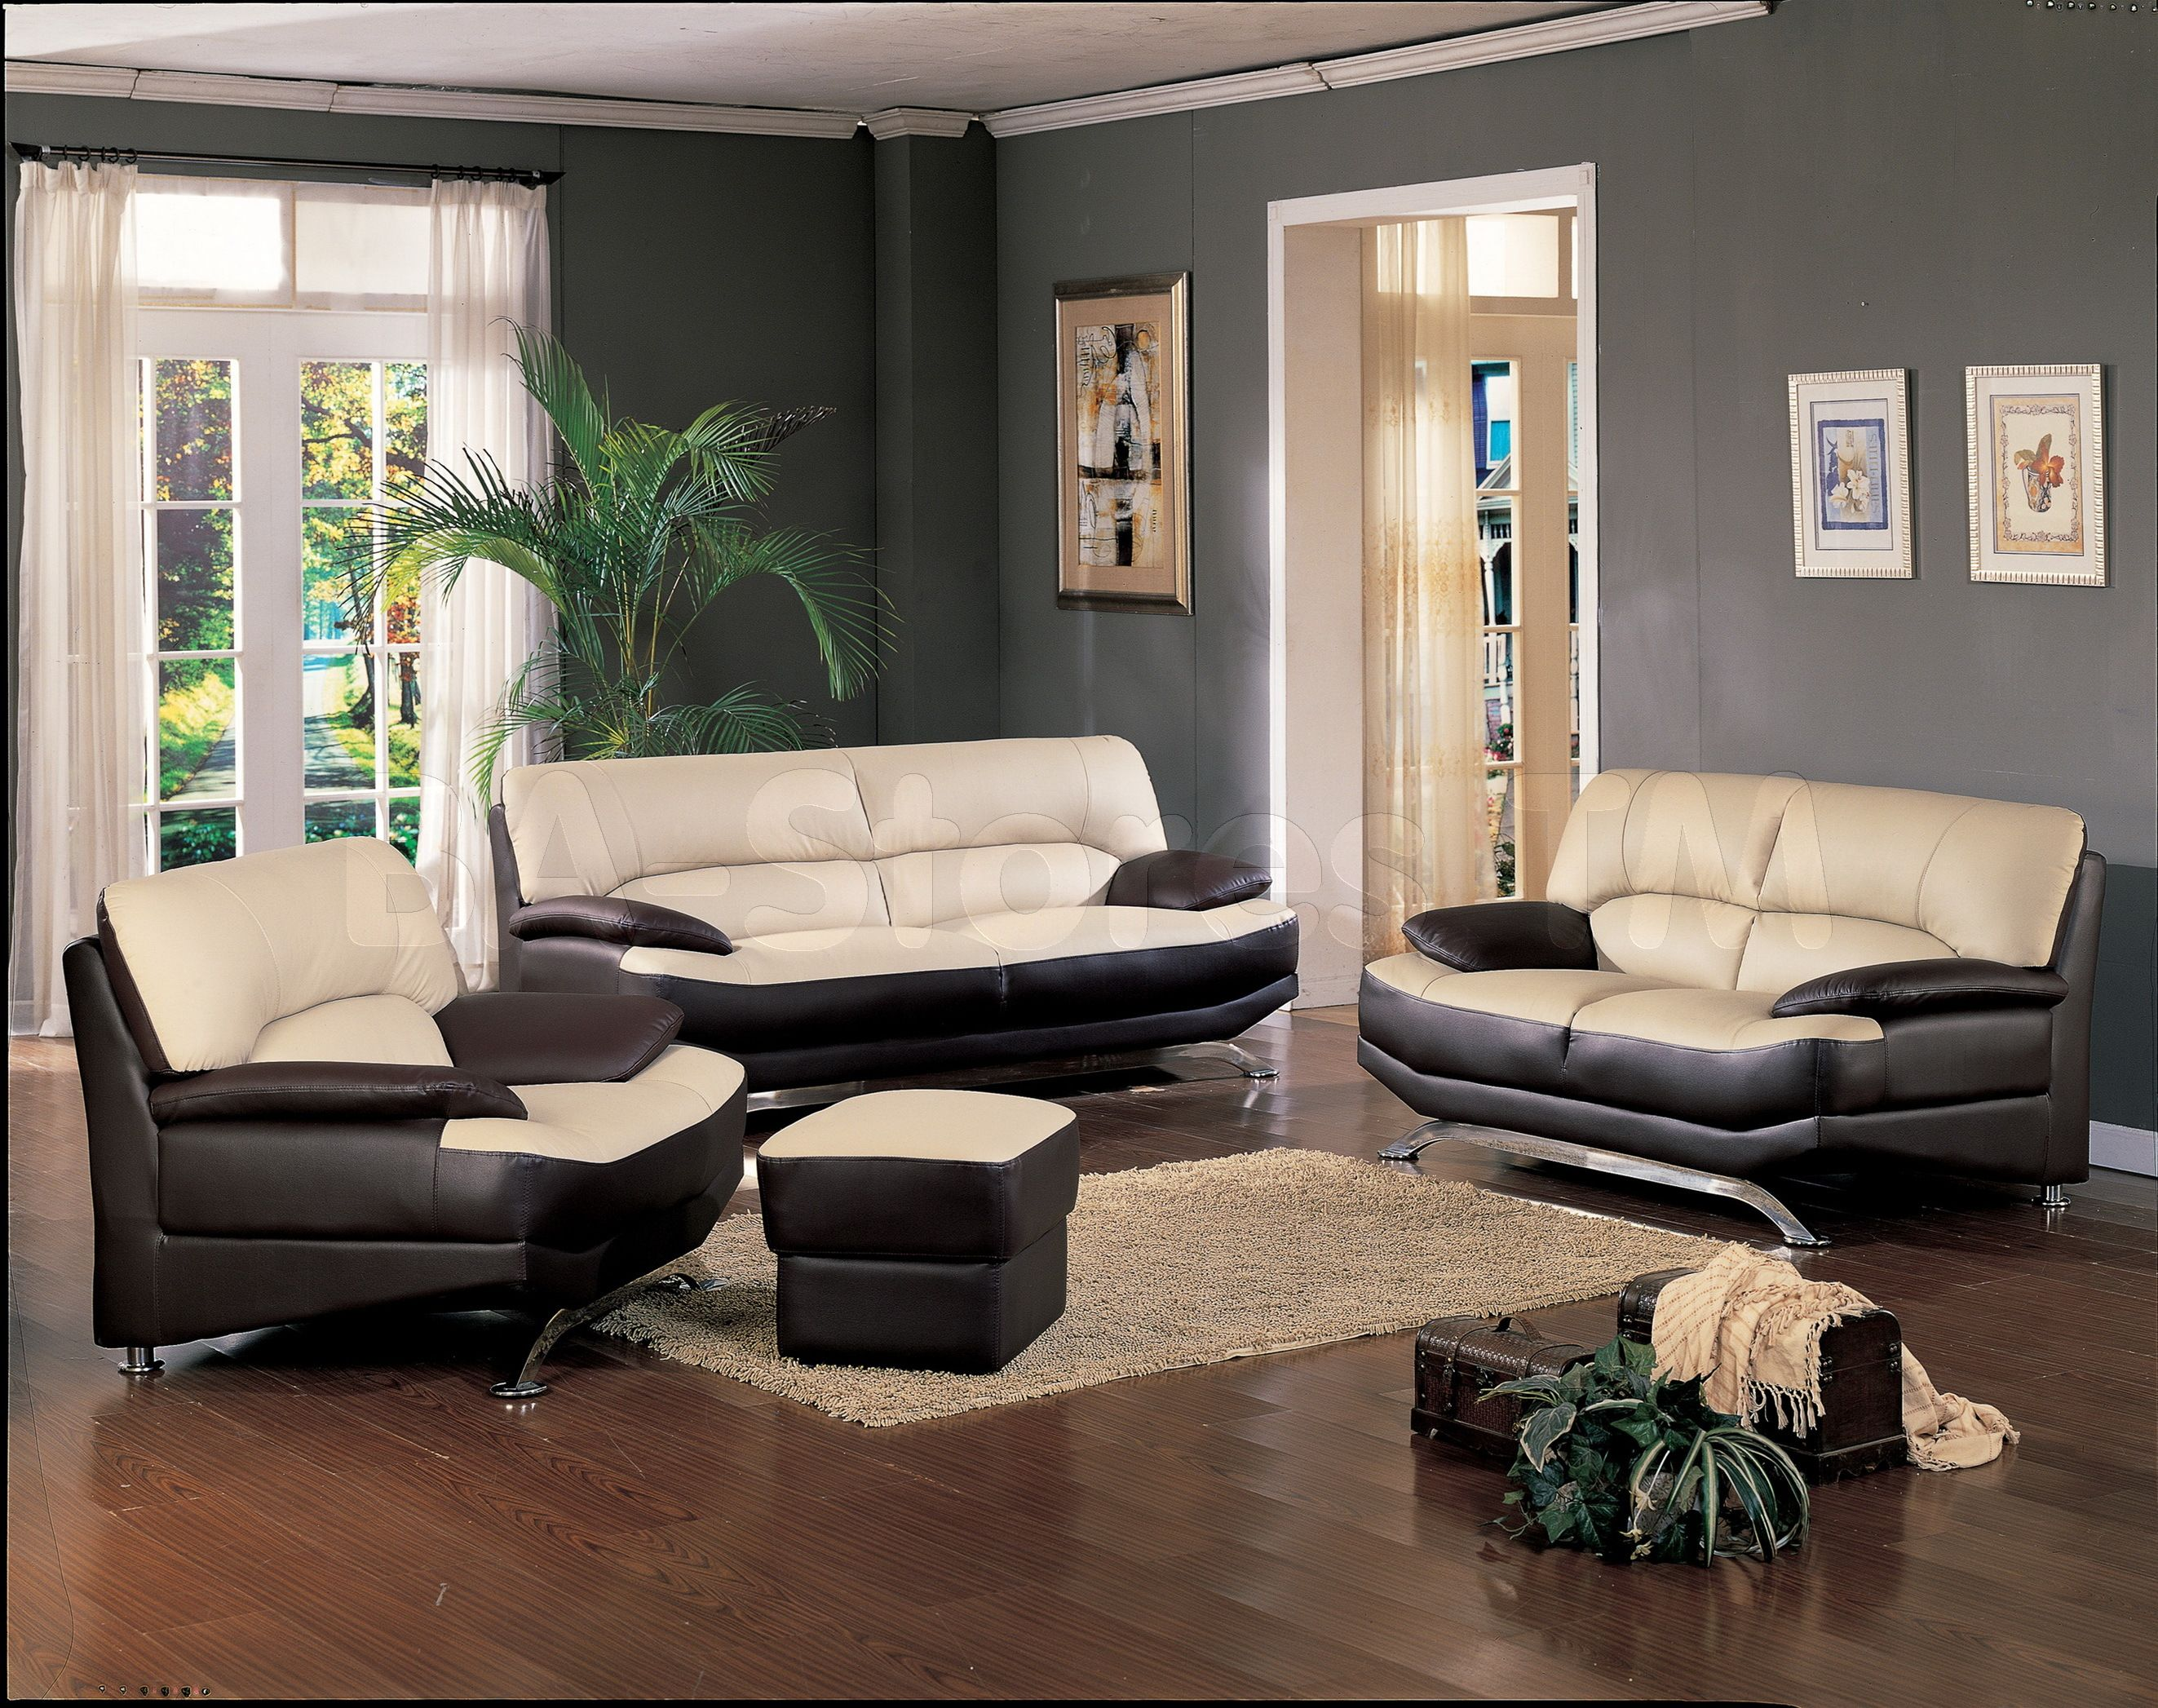 Leather Sofa Sets For Living Room 27 Best Images About Living Room Leather Furniture On Pinterest